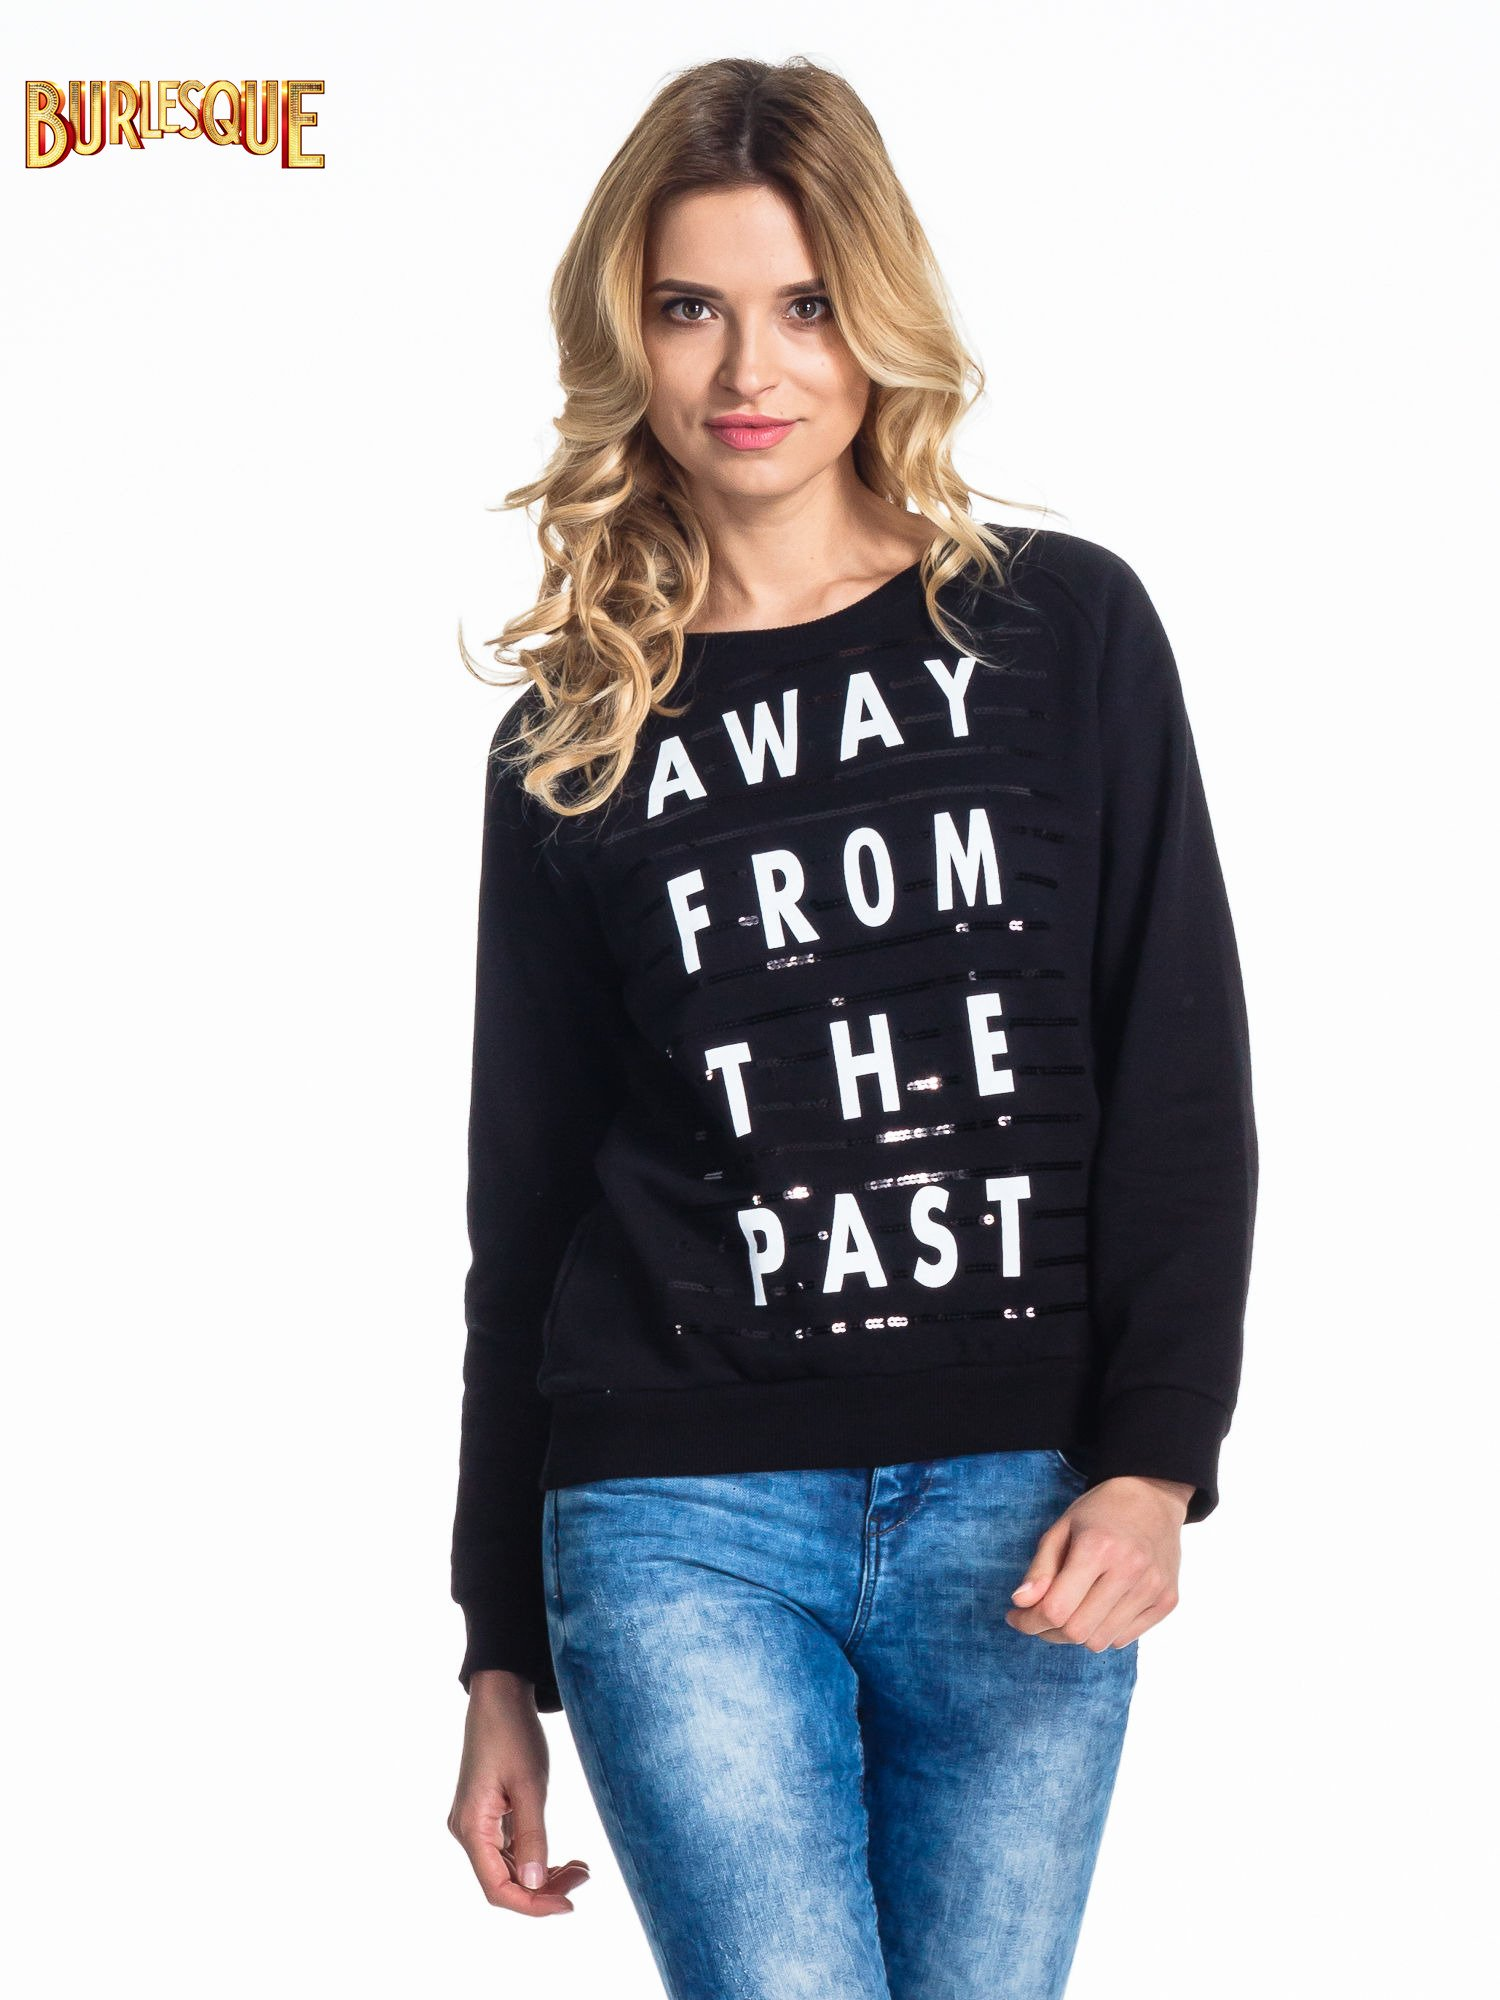 Czarna damska bluza z napisem AWAY FROM THE PAST                                  zdj.                                  3